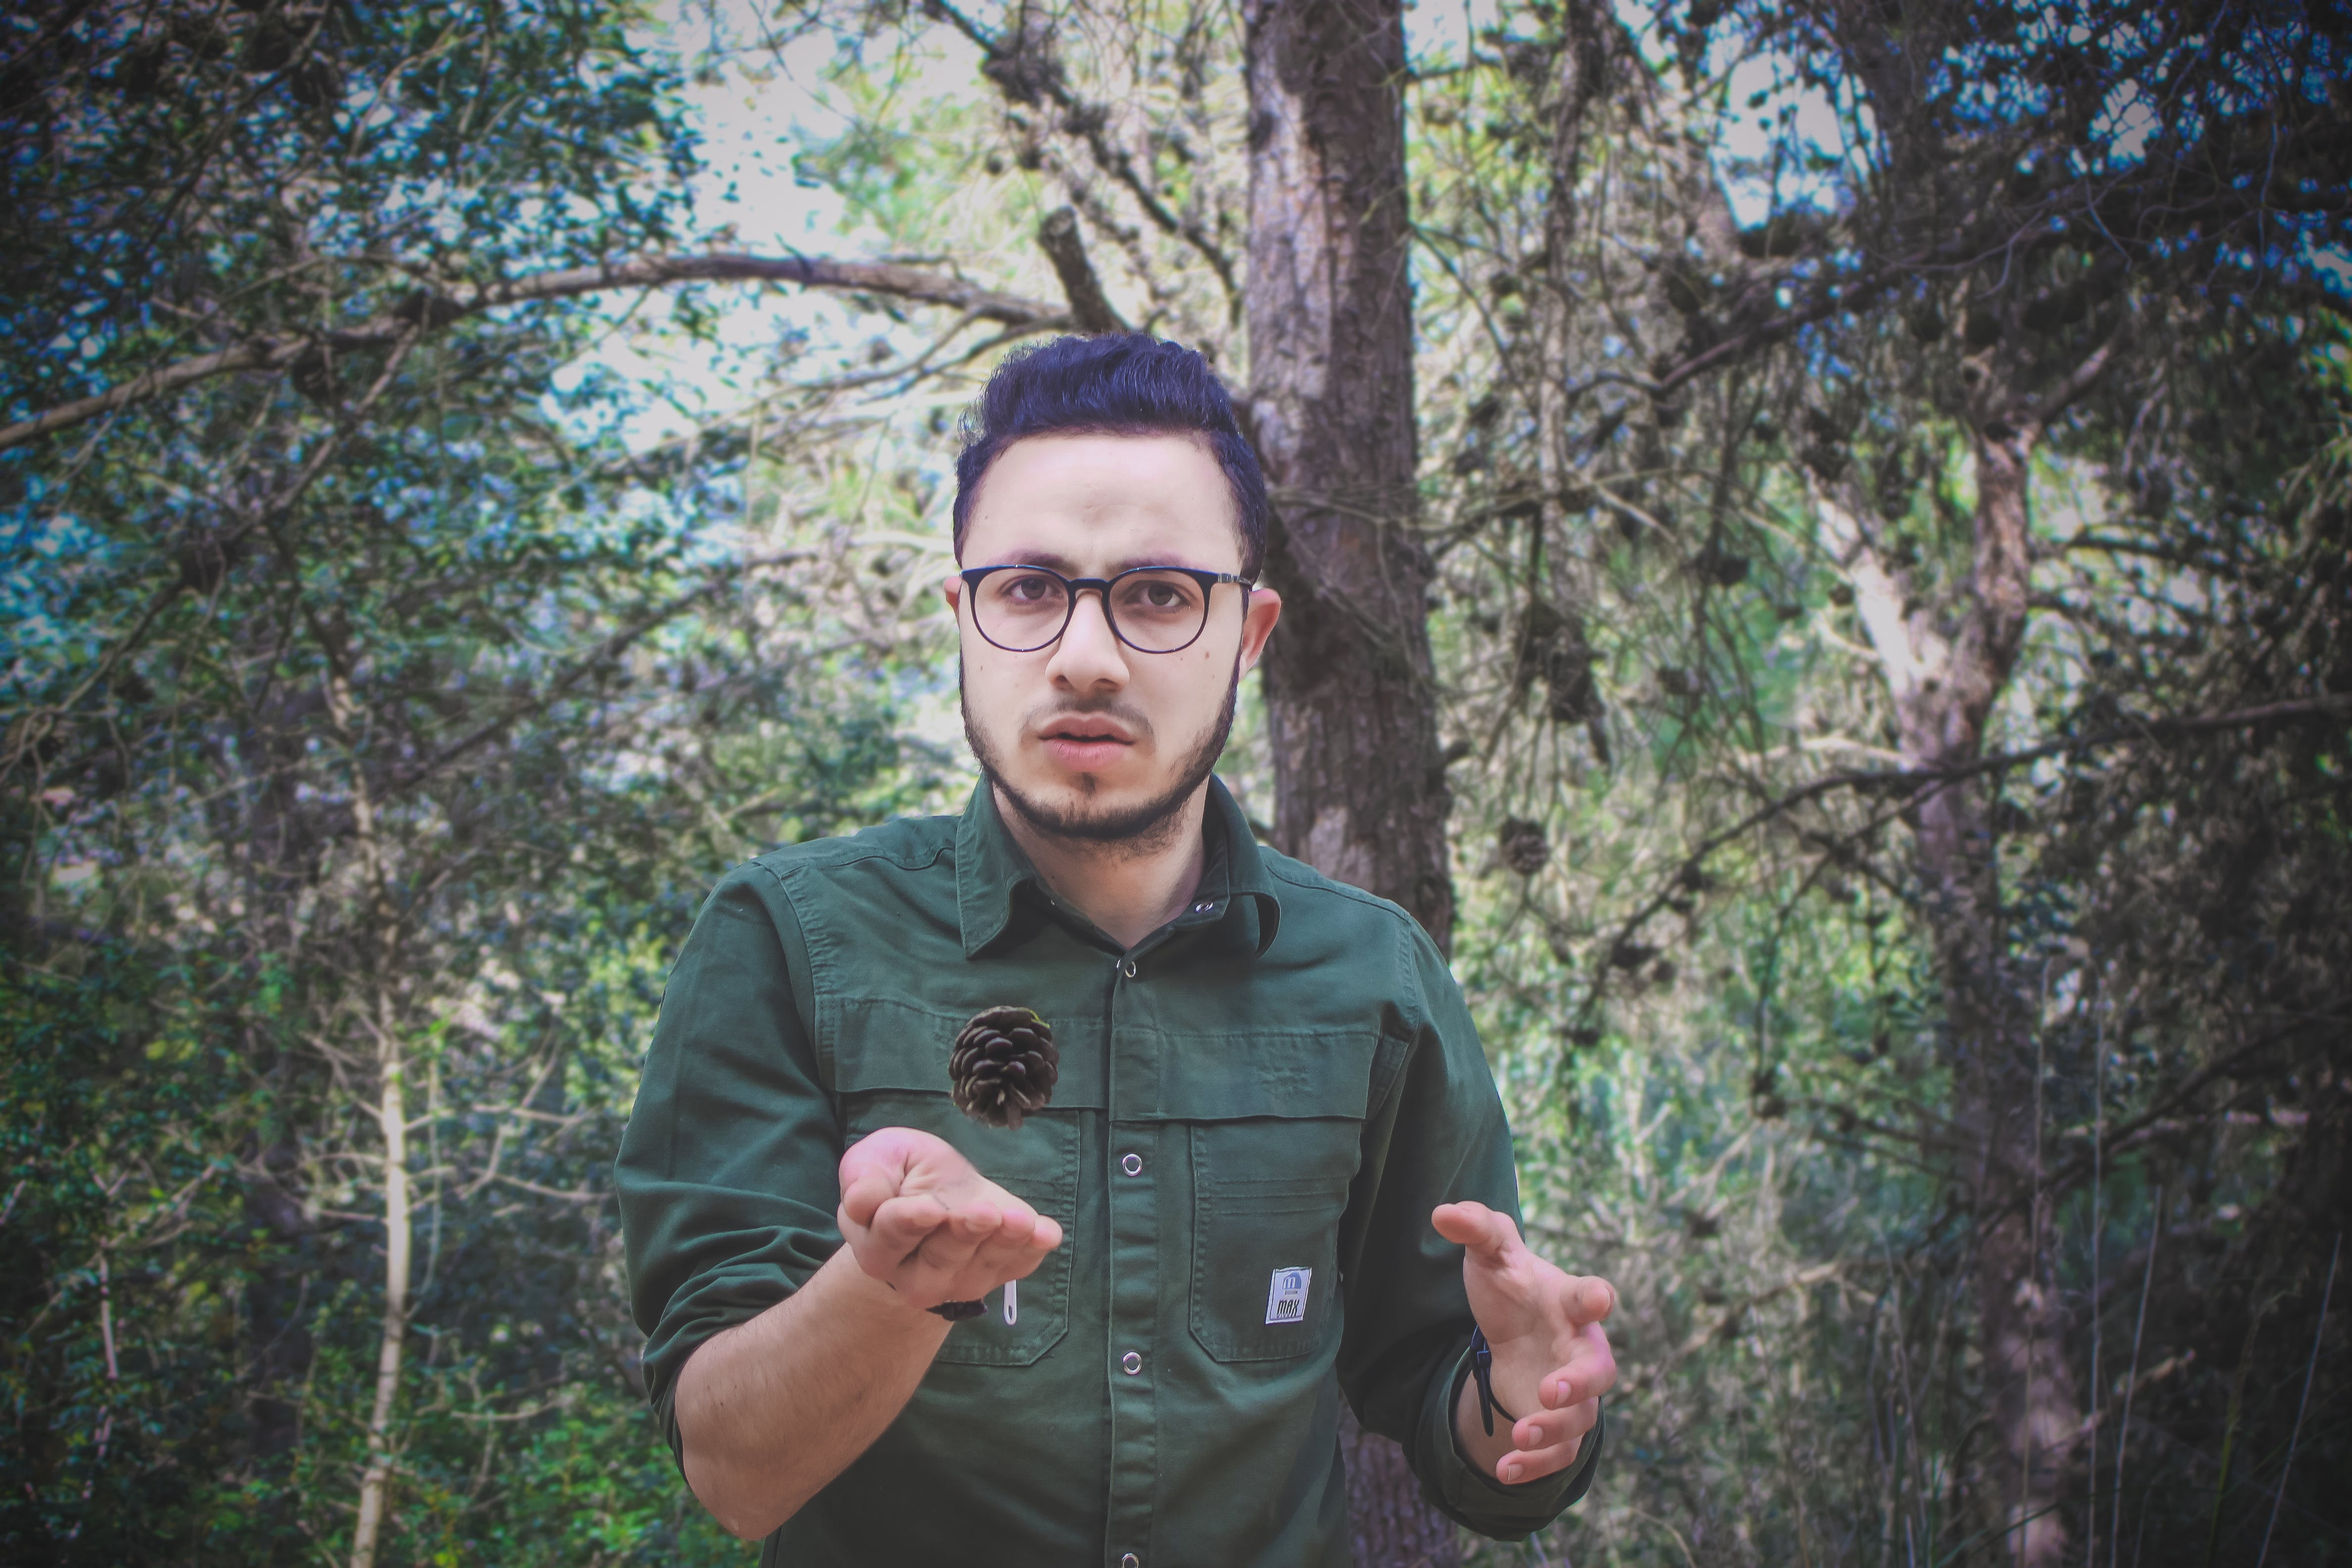 Man Wearing Green Dress Shirt and Surrounded by Trees